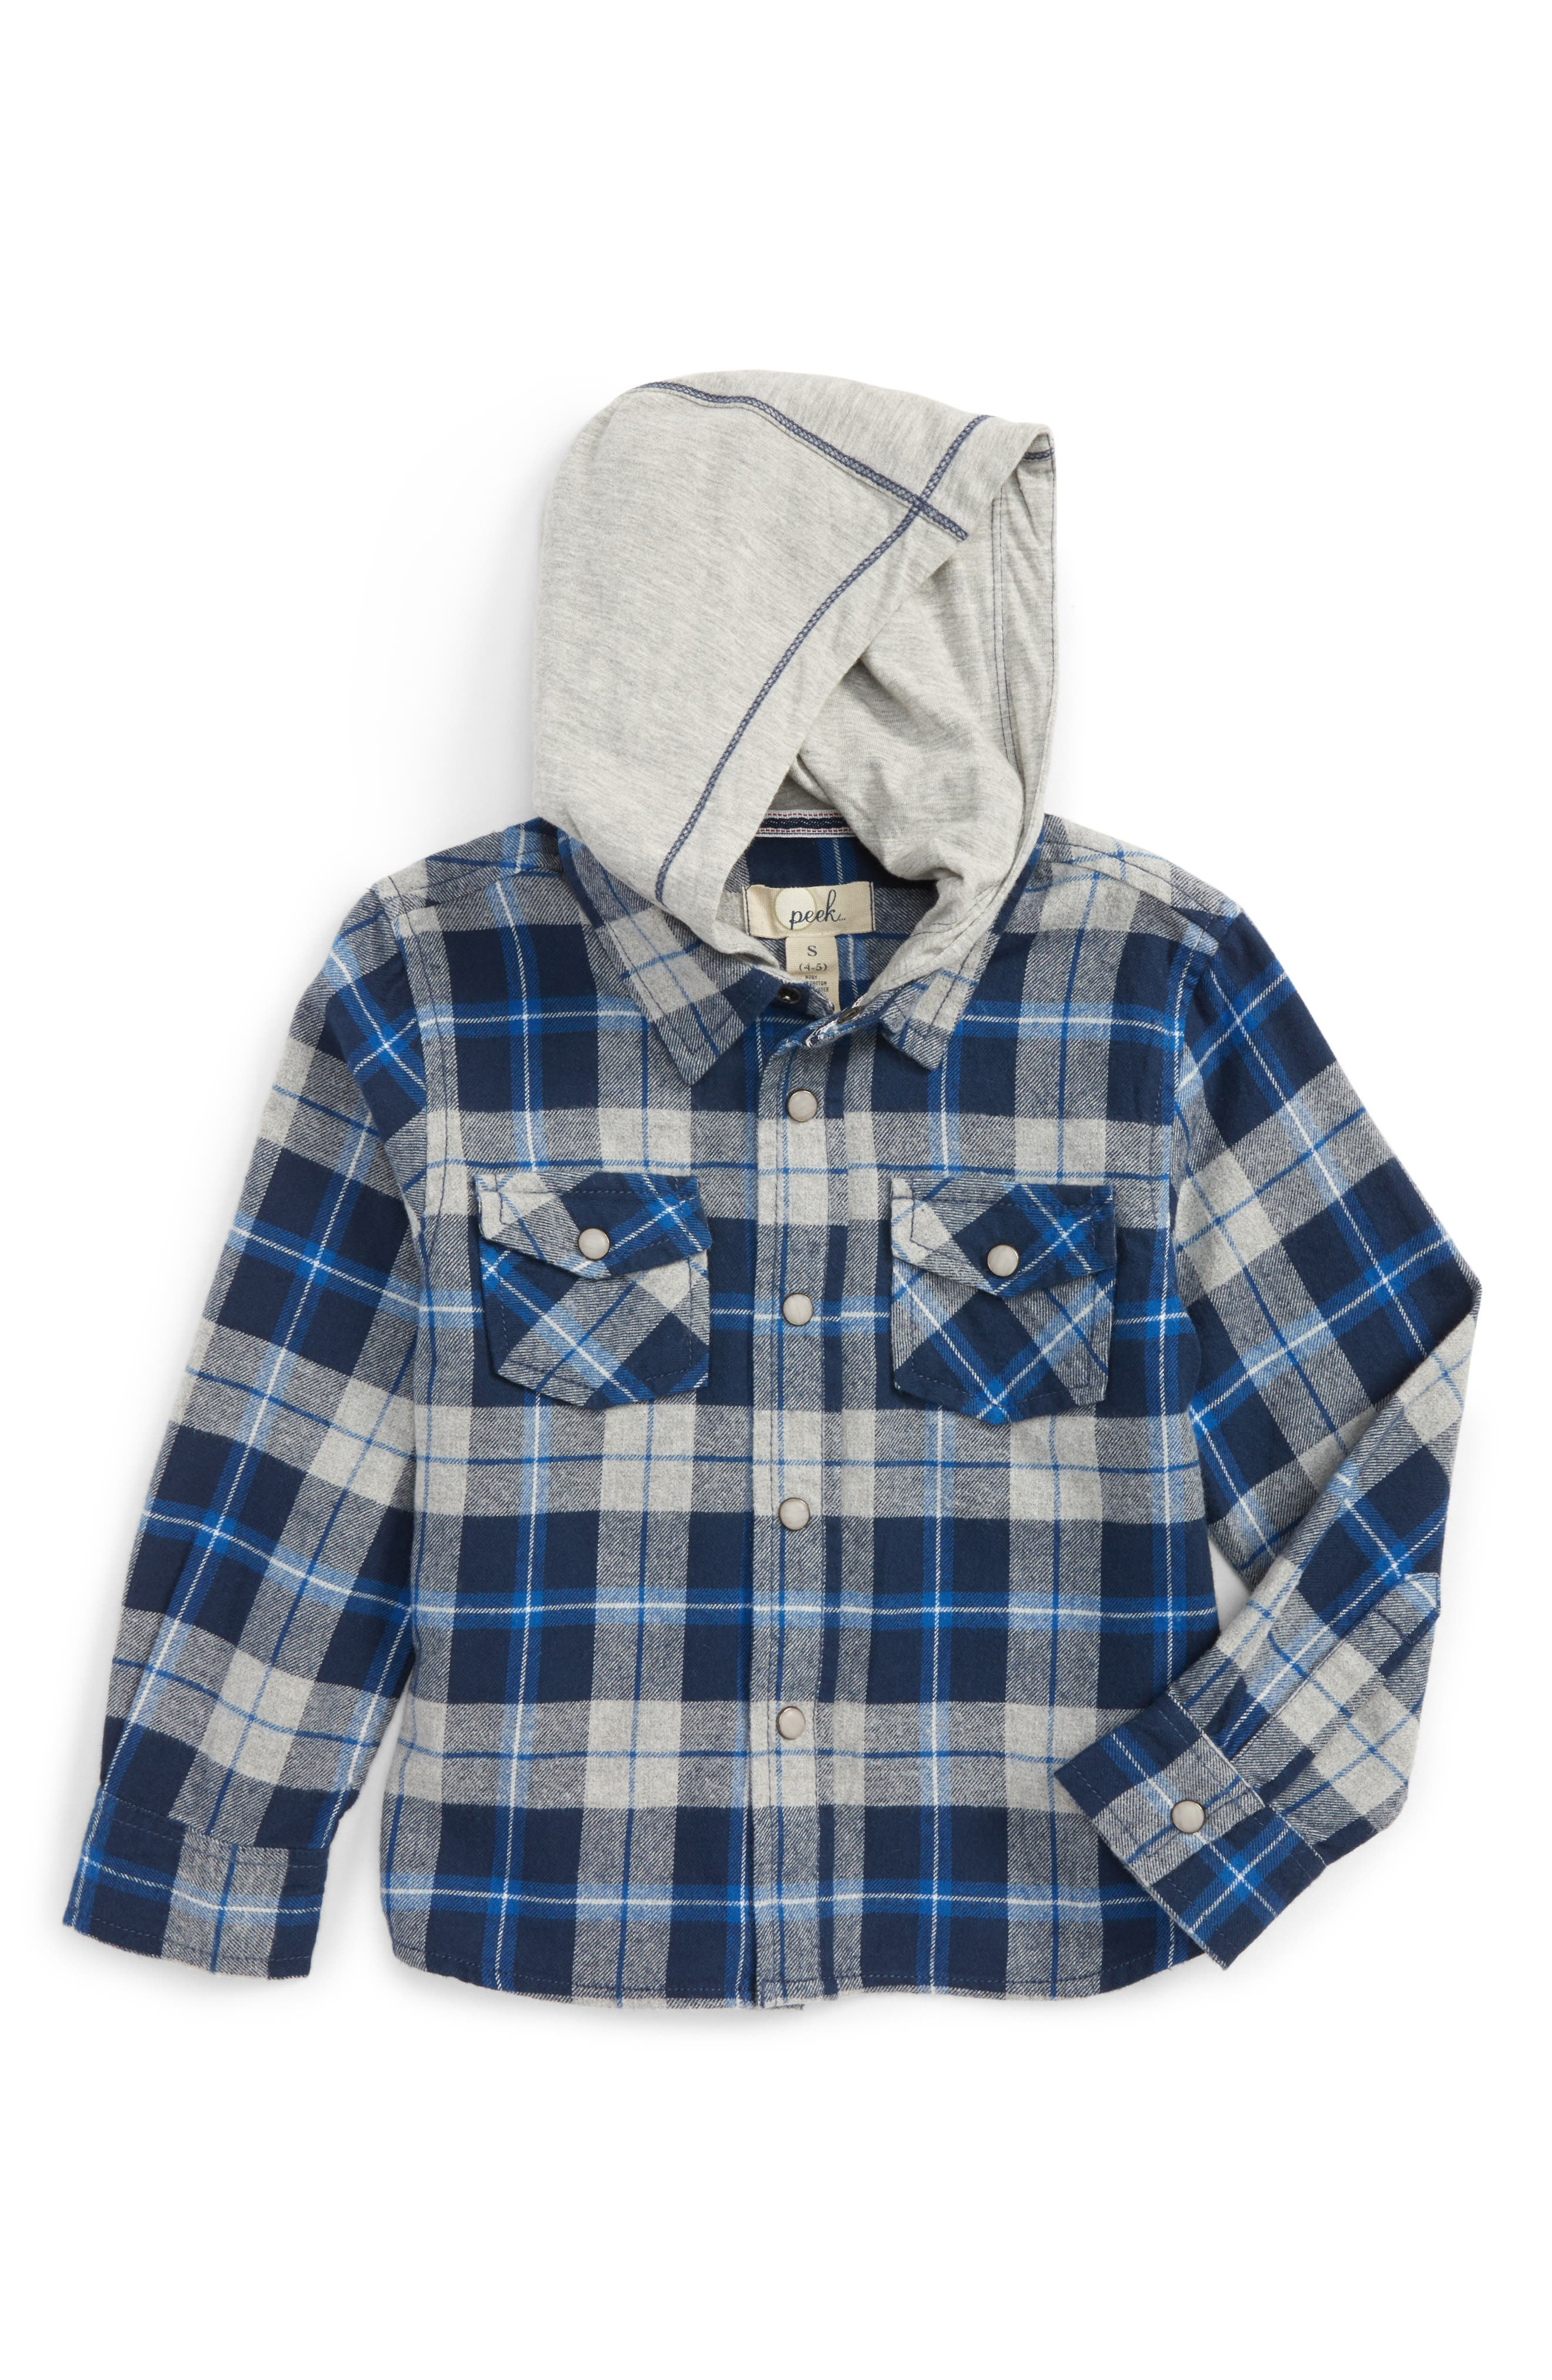 Liam Hooded Flannel Shirt,                             Main thumbnail 1, color,                             020